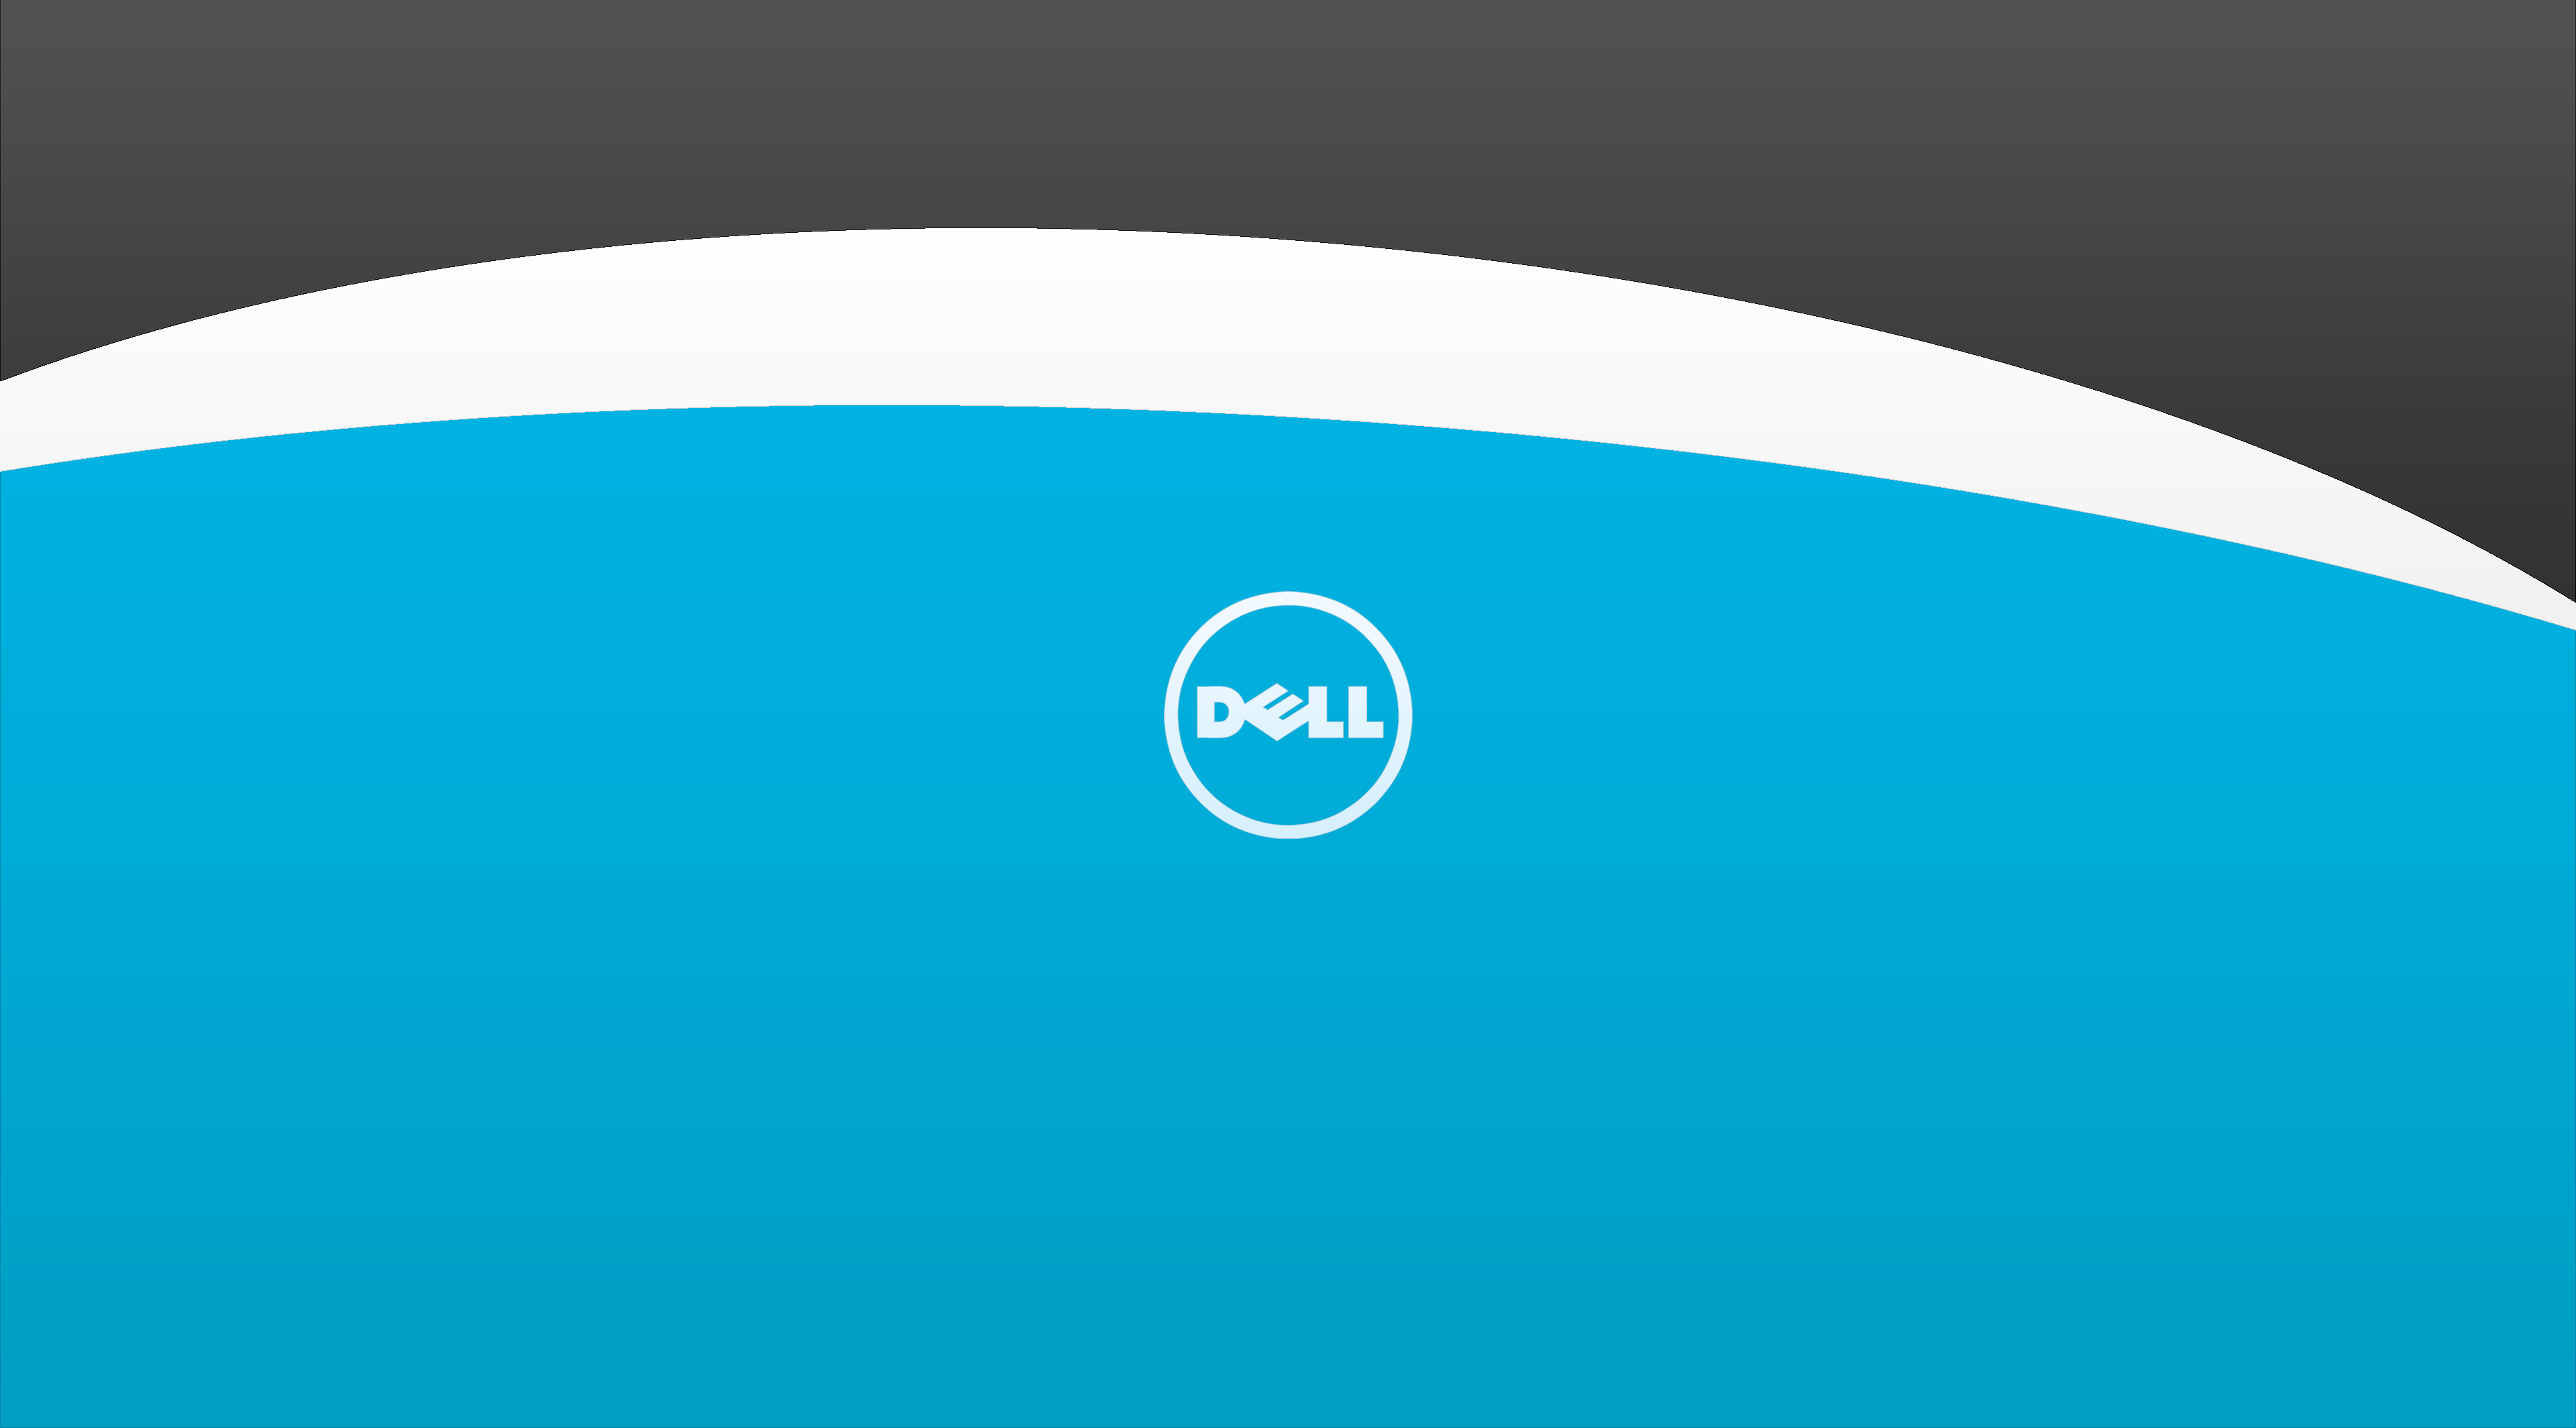 Dell Wallpapers 20 3840 x 2128 768x426